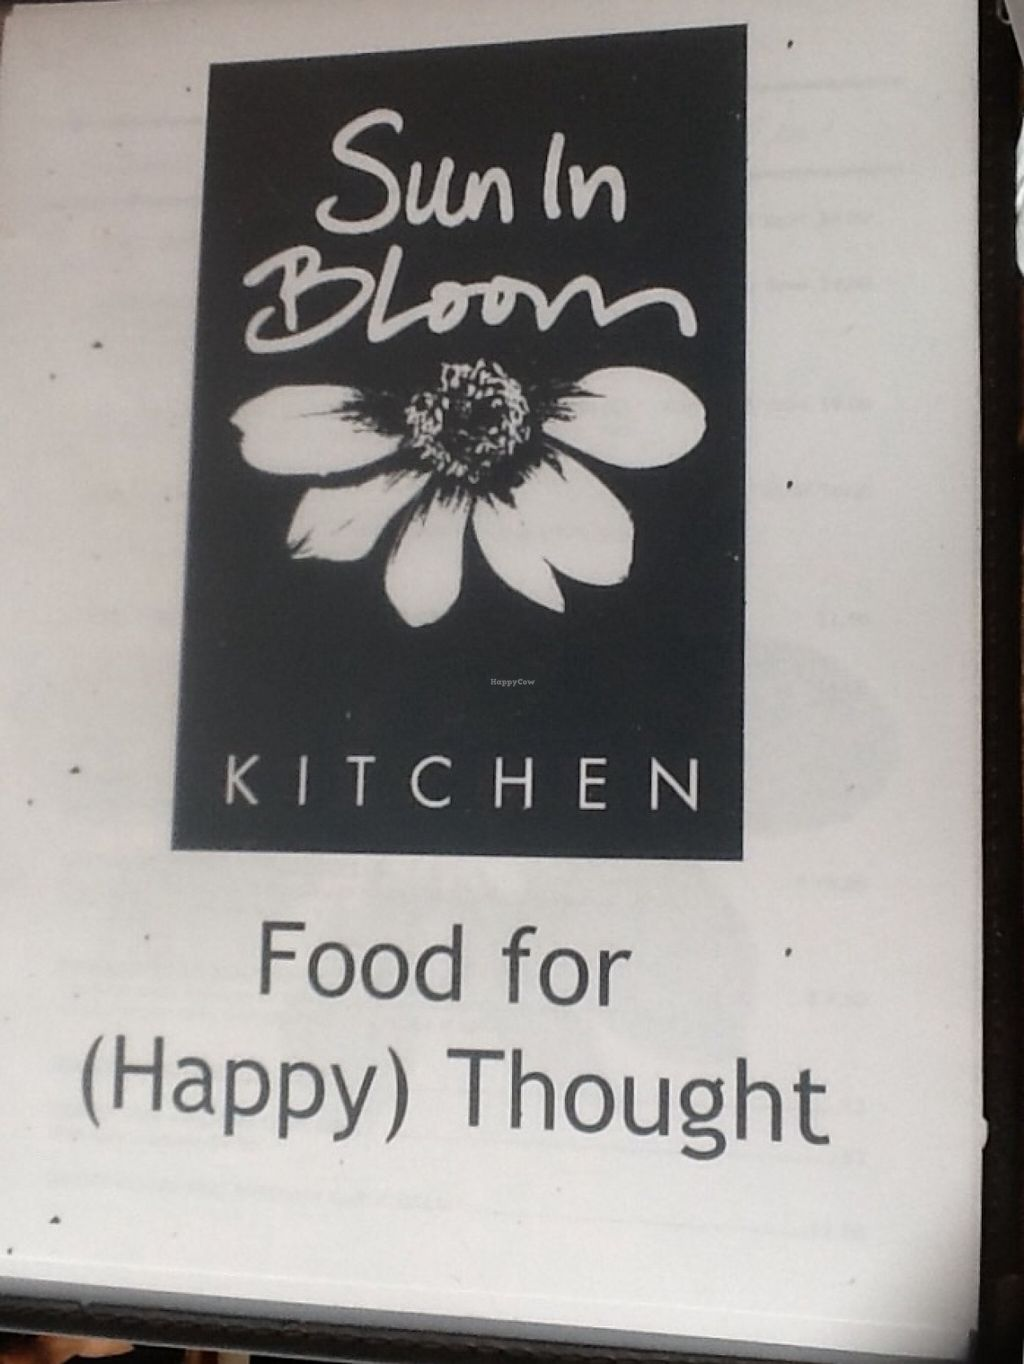 """Photo of CLOSED: Sun in Bloom  by <a href=""""/members/profile/MizzB"""">MizzB</a> <br/>Haapy food. Menu cover <br/> August 31, 2015  - <a href='/contact/abuse/image/14366/115930'>Report</a>"""